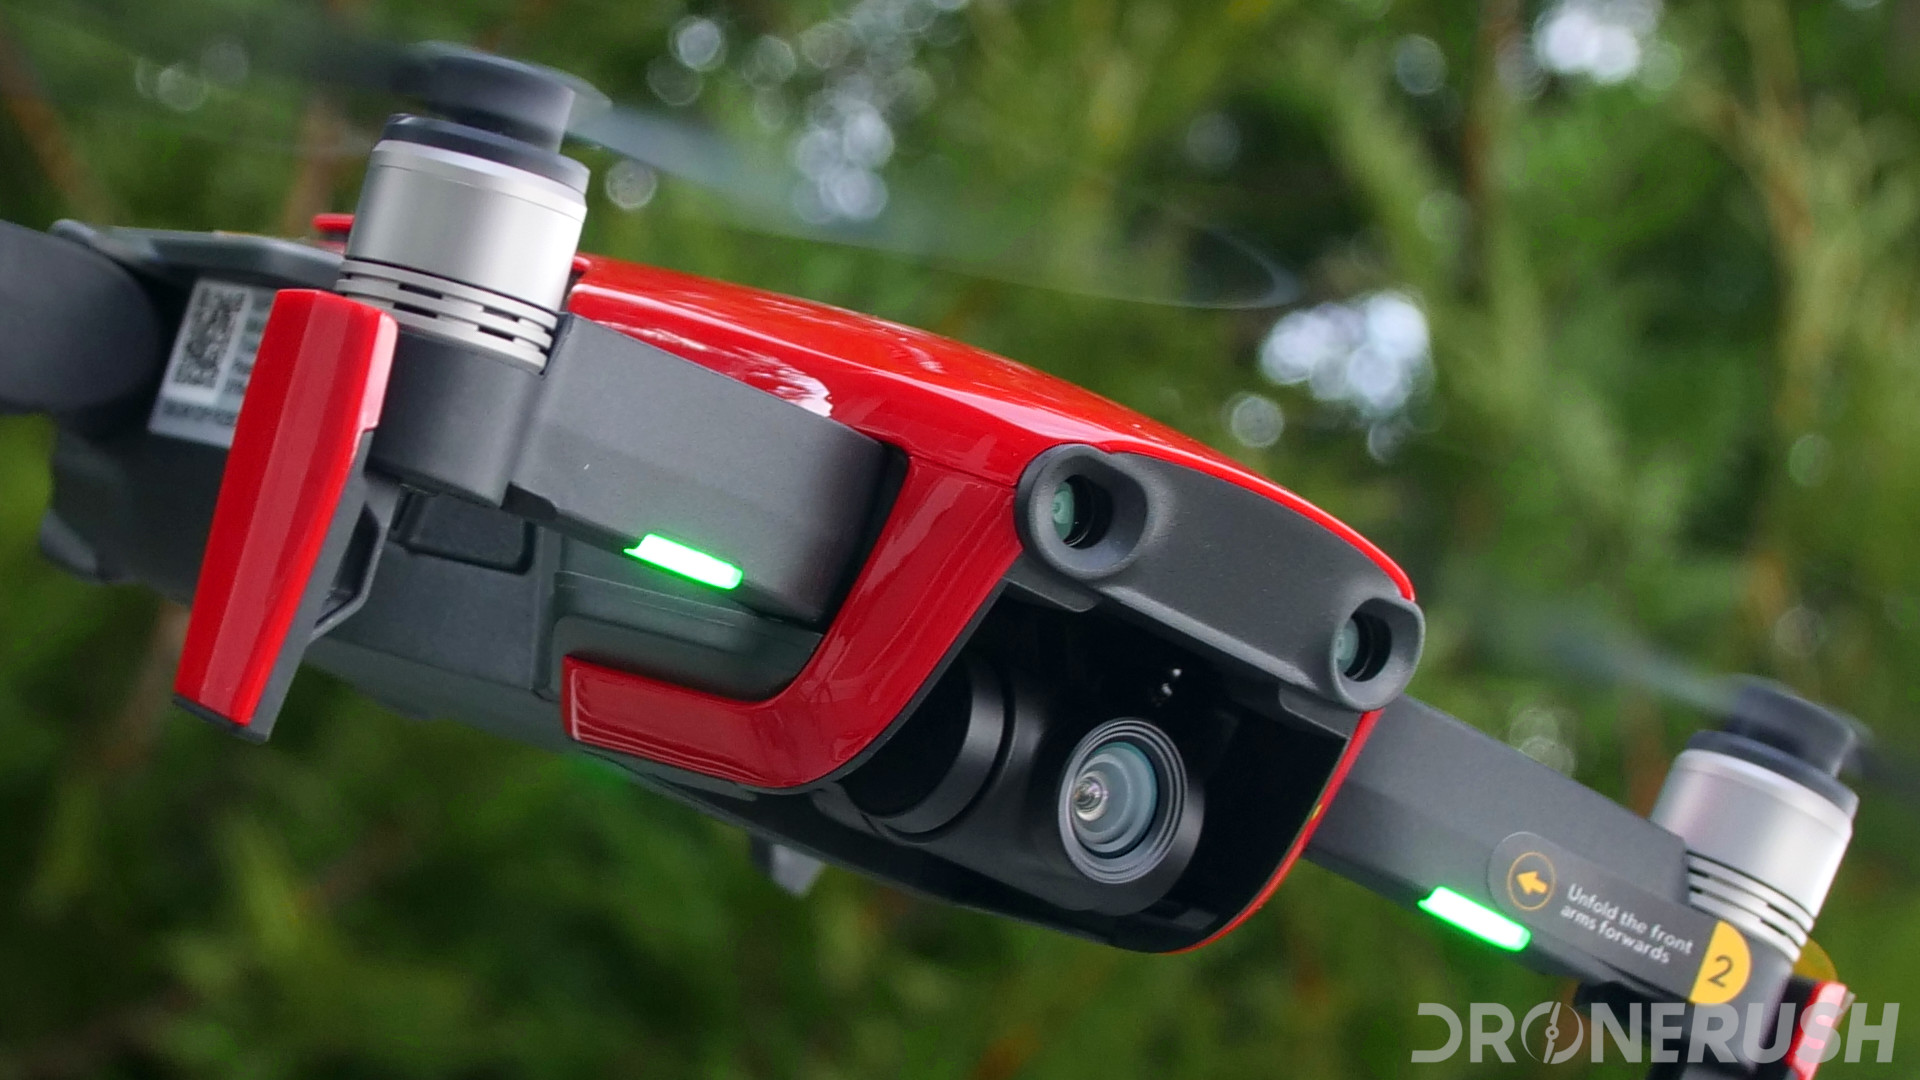 Best selfie drones - look up and smile - Drone Rush